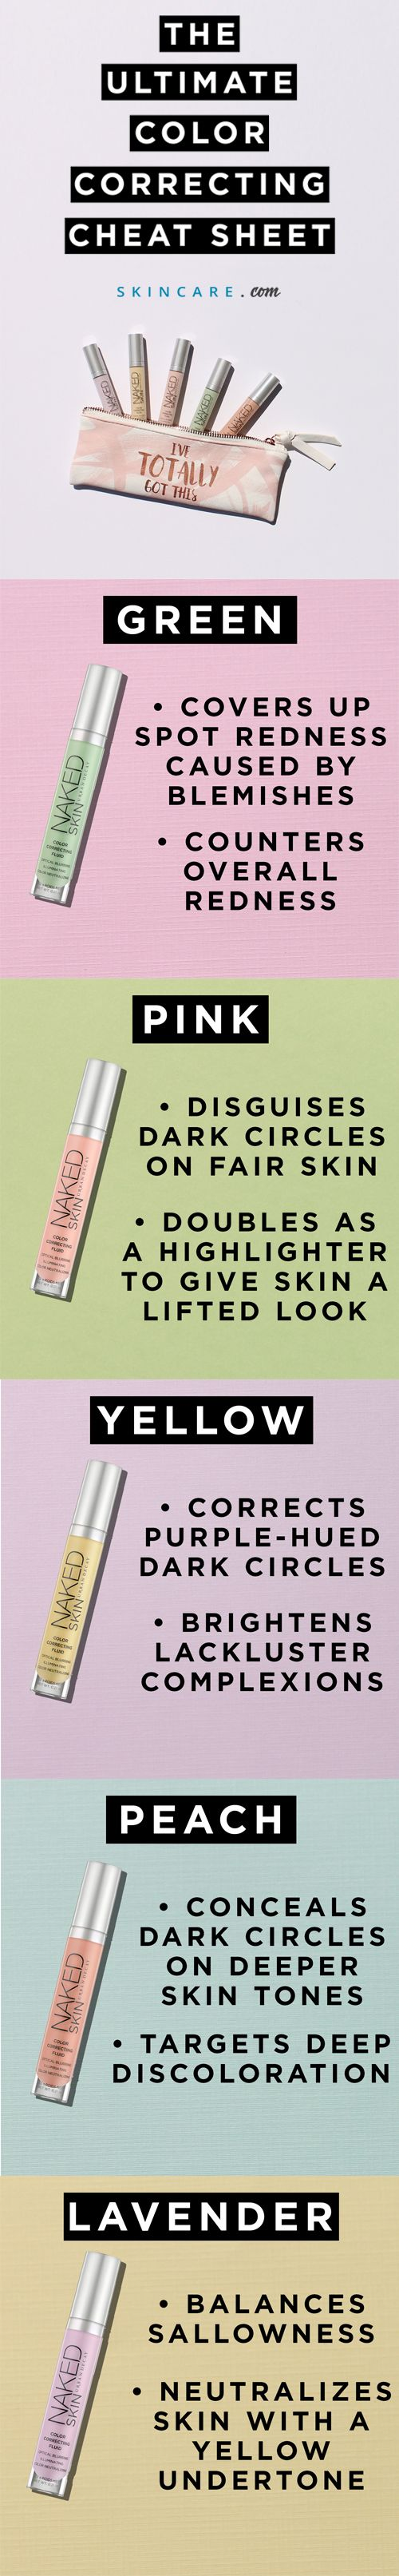 Color correction covers up dark circles, redness, pimples, dull skin, and other kinds of skin discoloration using different color concealers. Green gets rid of redness and covers up your breakouts, while pink, yellow or peach can cover up your dark circles, and purple makes your dull skin look bright and highlighted. Learn how to use @urbandecay's Naked Skin Color Correcting Fluid concealers in your makeup routine with our color correction tutorial, here.